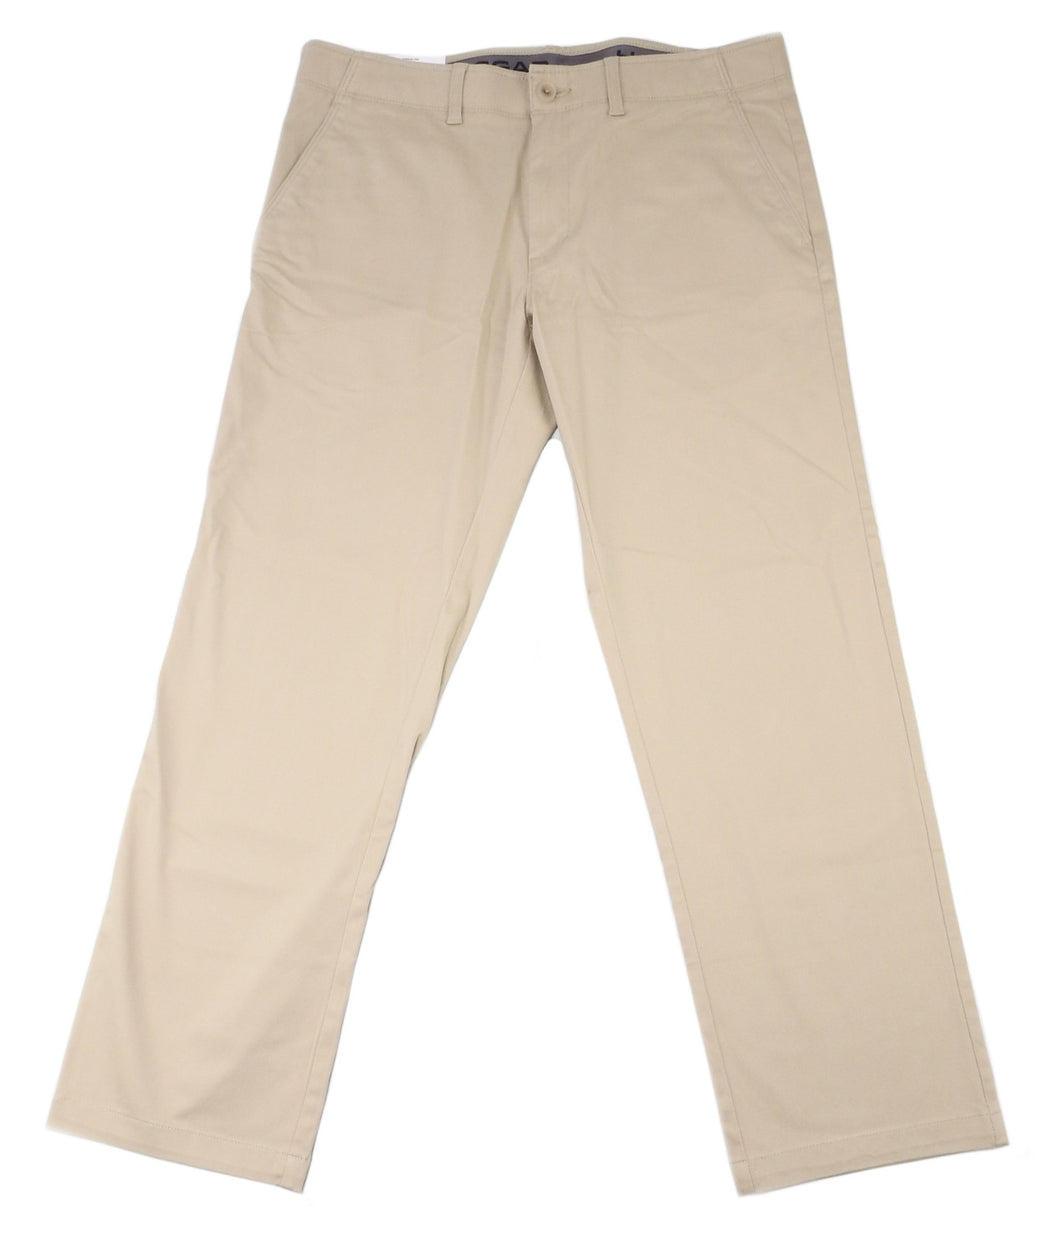 Haggar Clothing Men's Size 36 x 30 Straight Fit Sustainable Stretch Chino Pant, Khaki